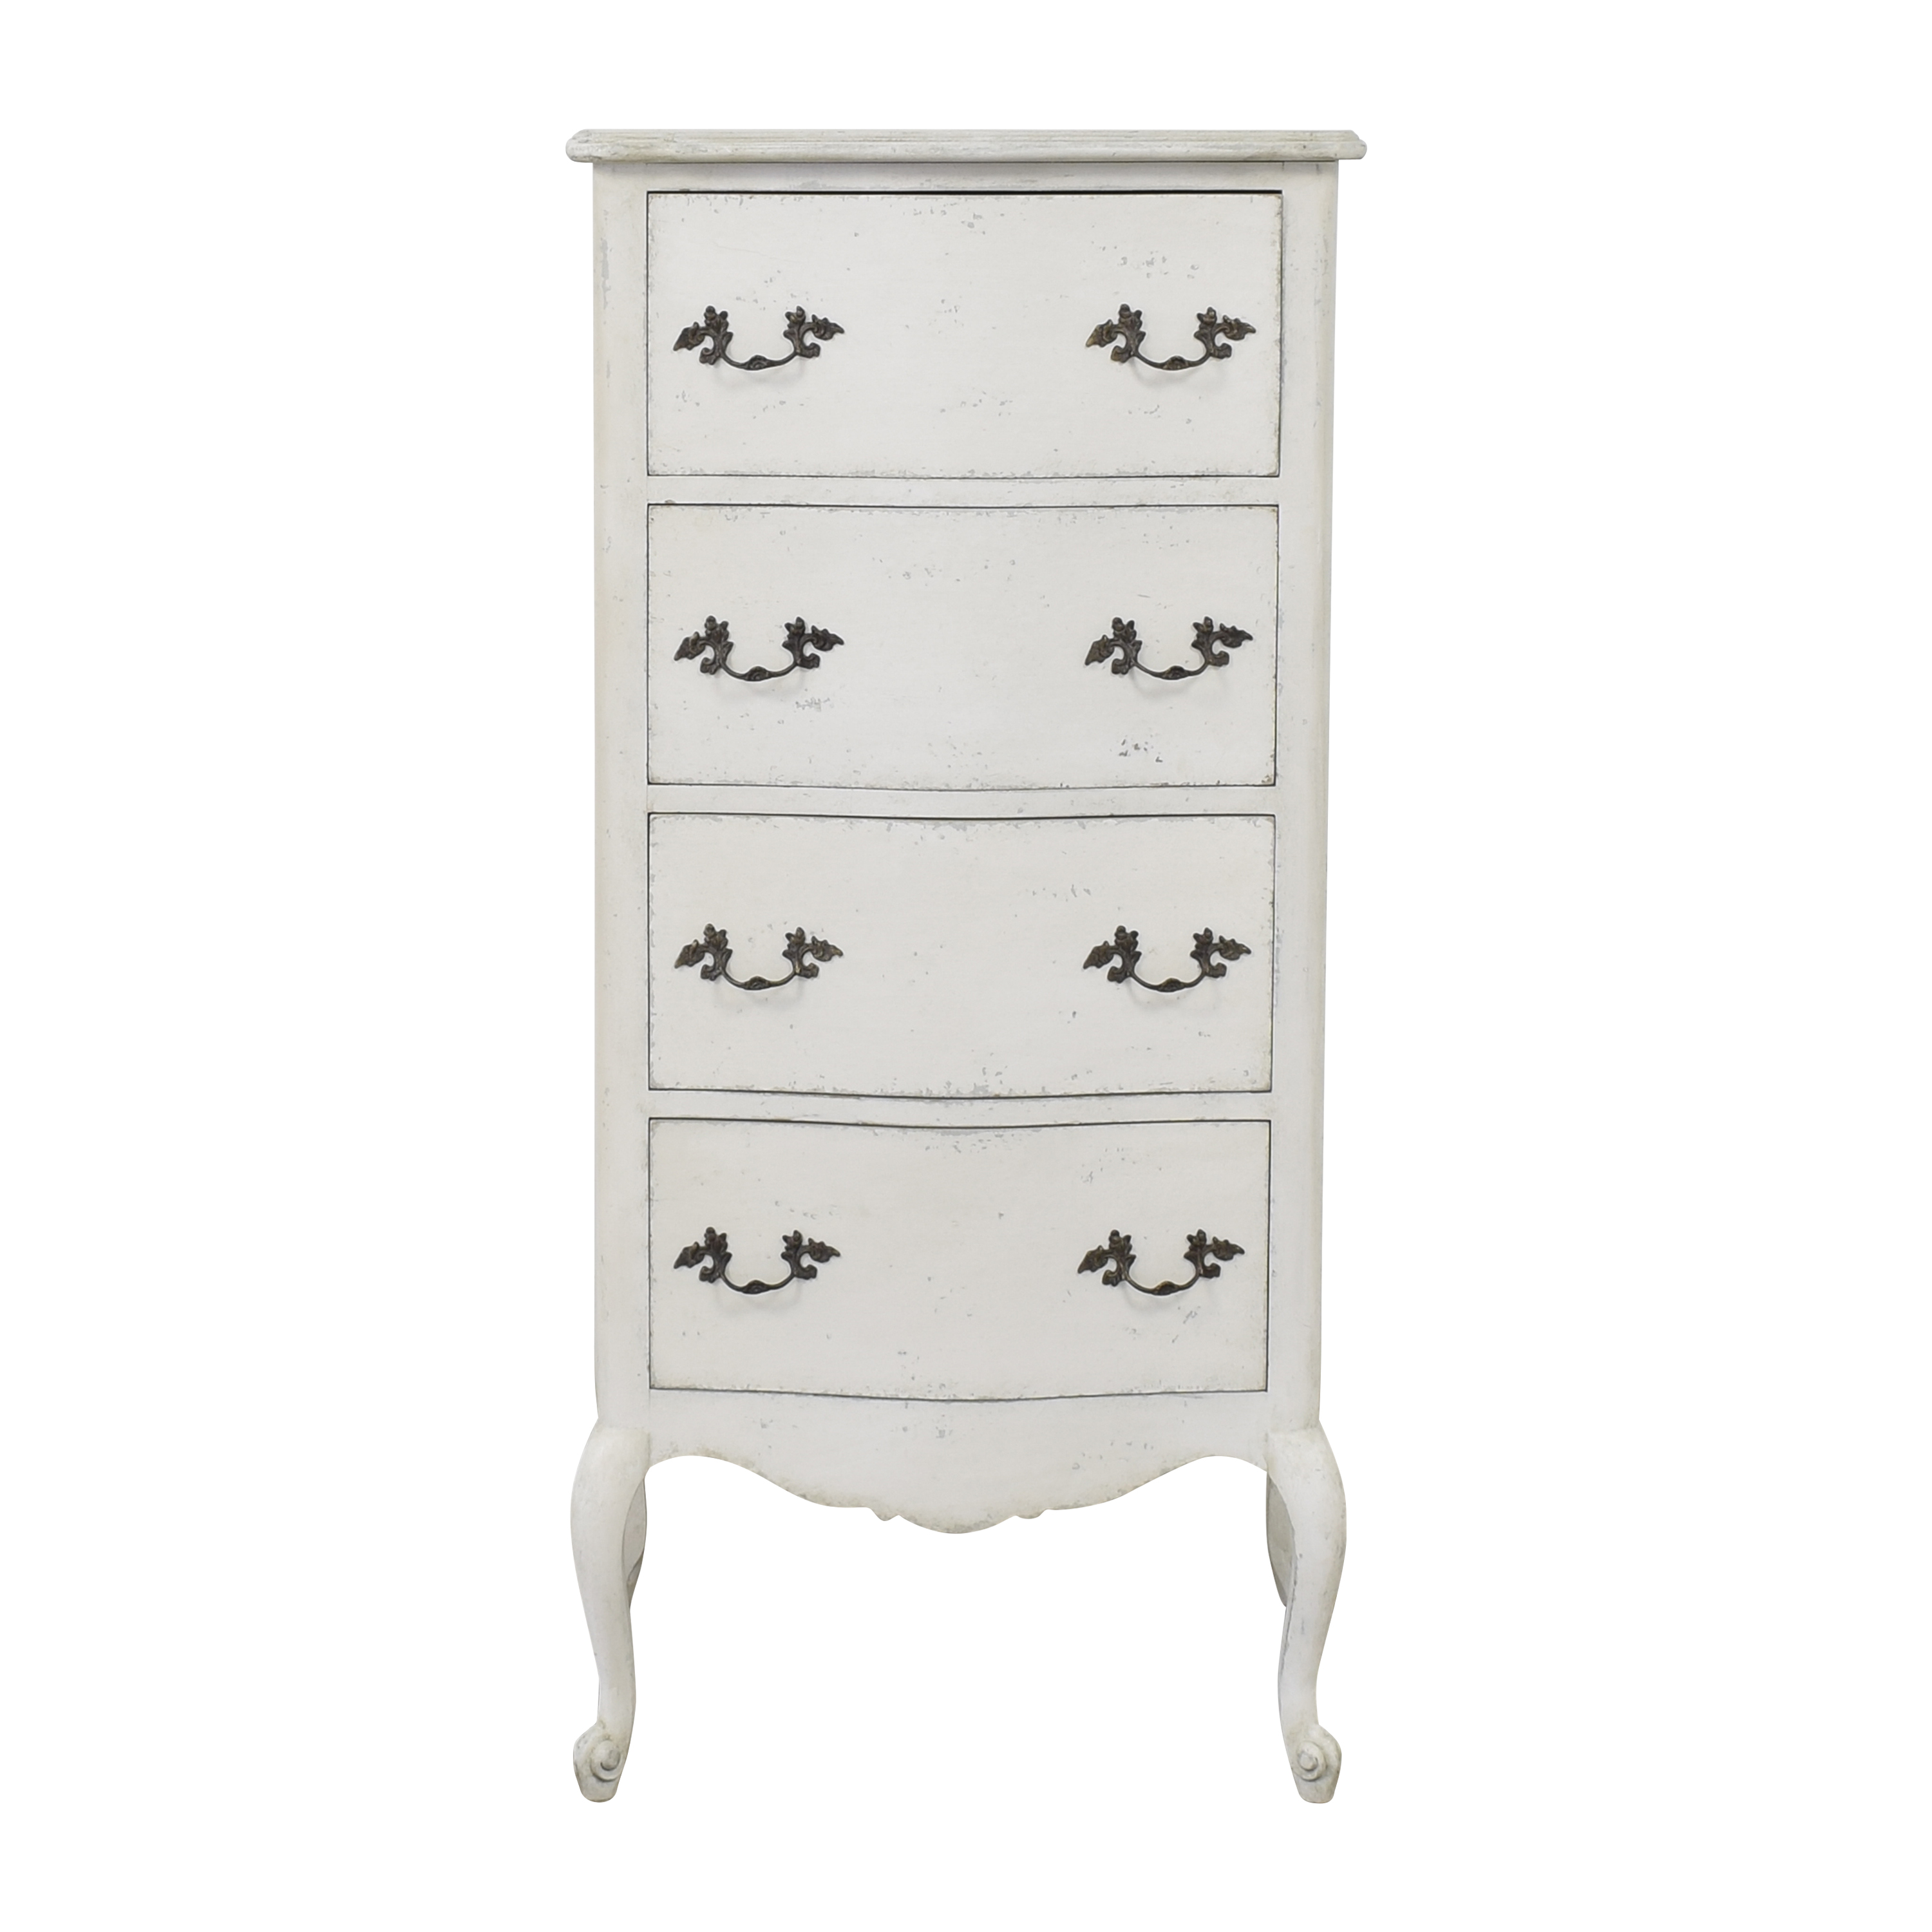 Eloquence Eloquence Clementine French Country Four Drawer Narrow Chest nj